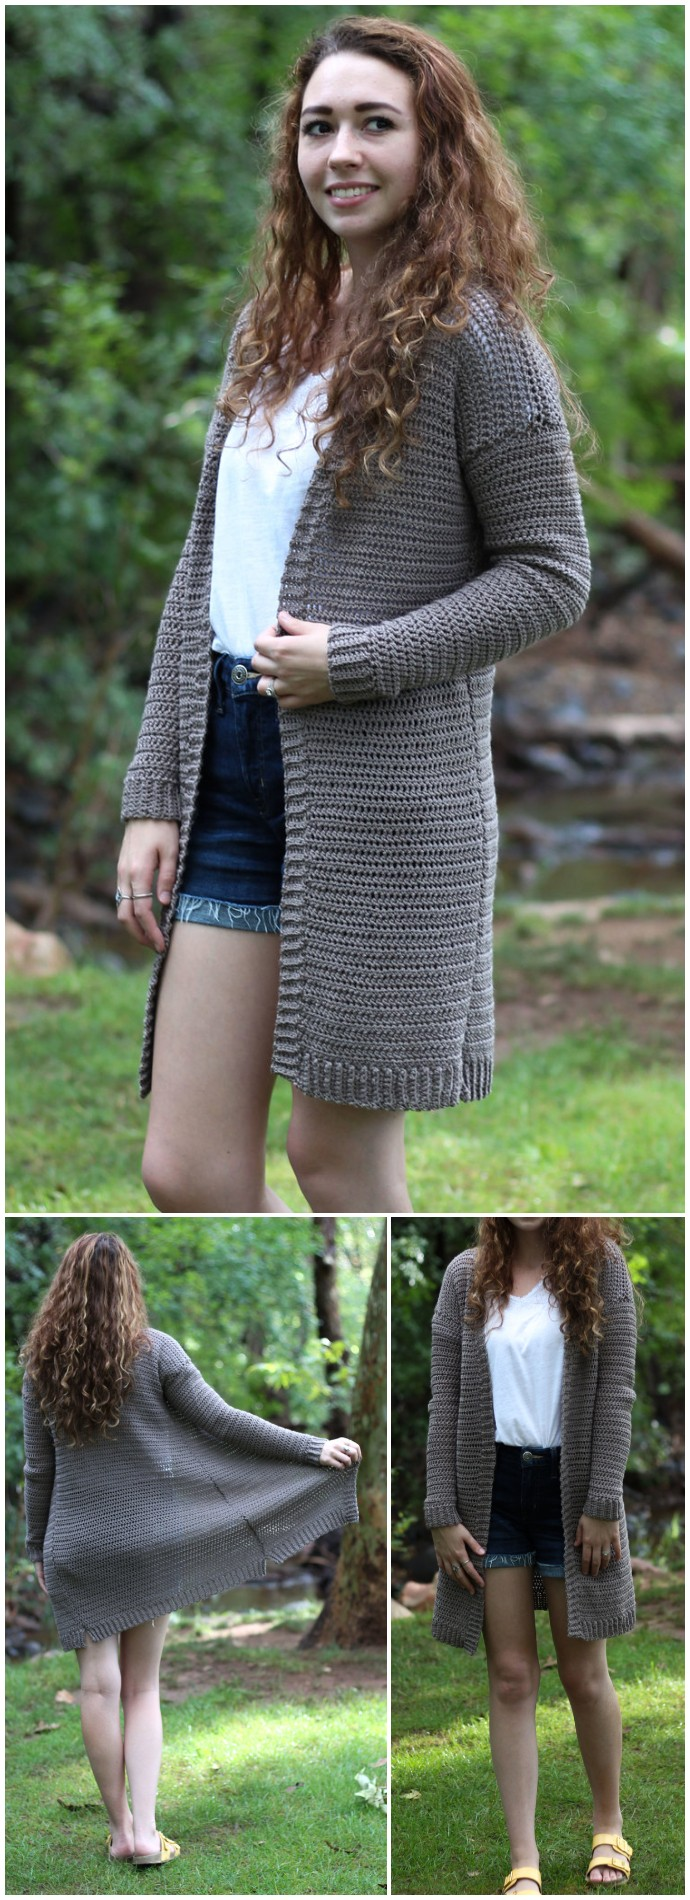 The Campfire Cardigan Free Crochet